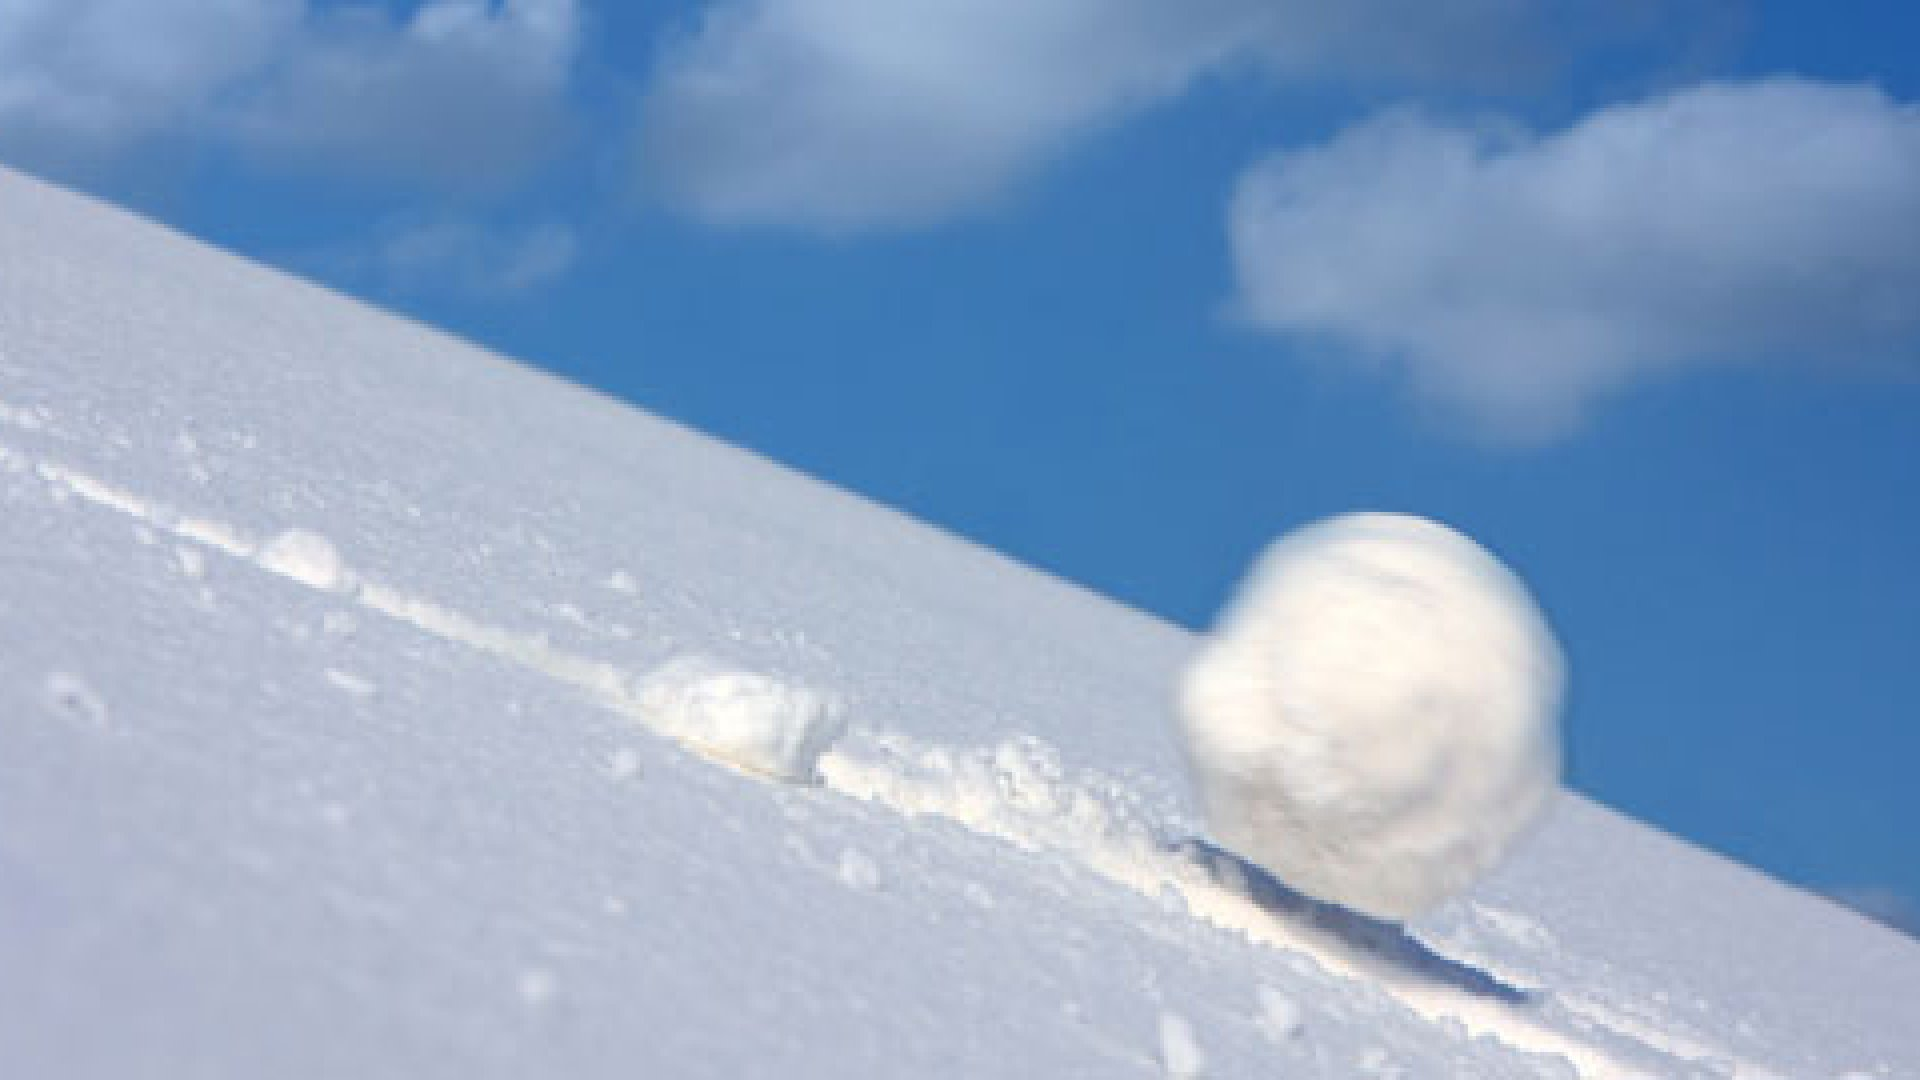 Don't Let Expenses Snowball